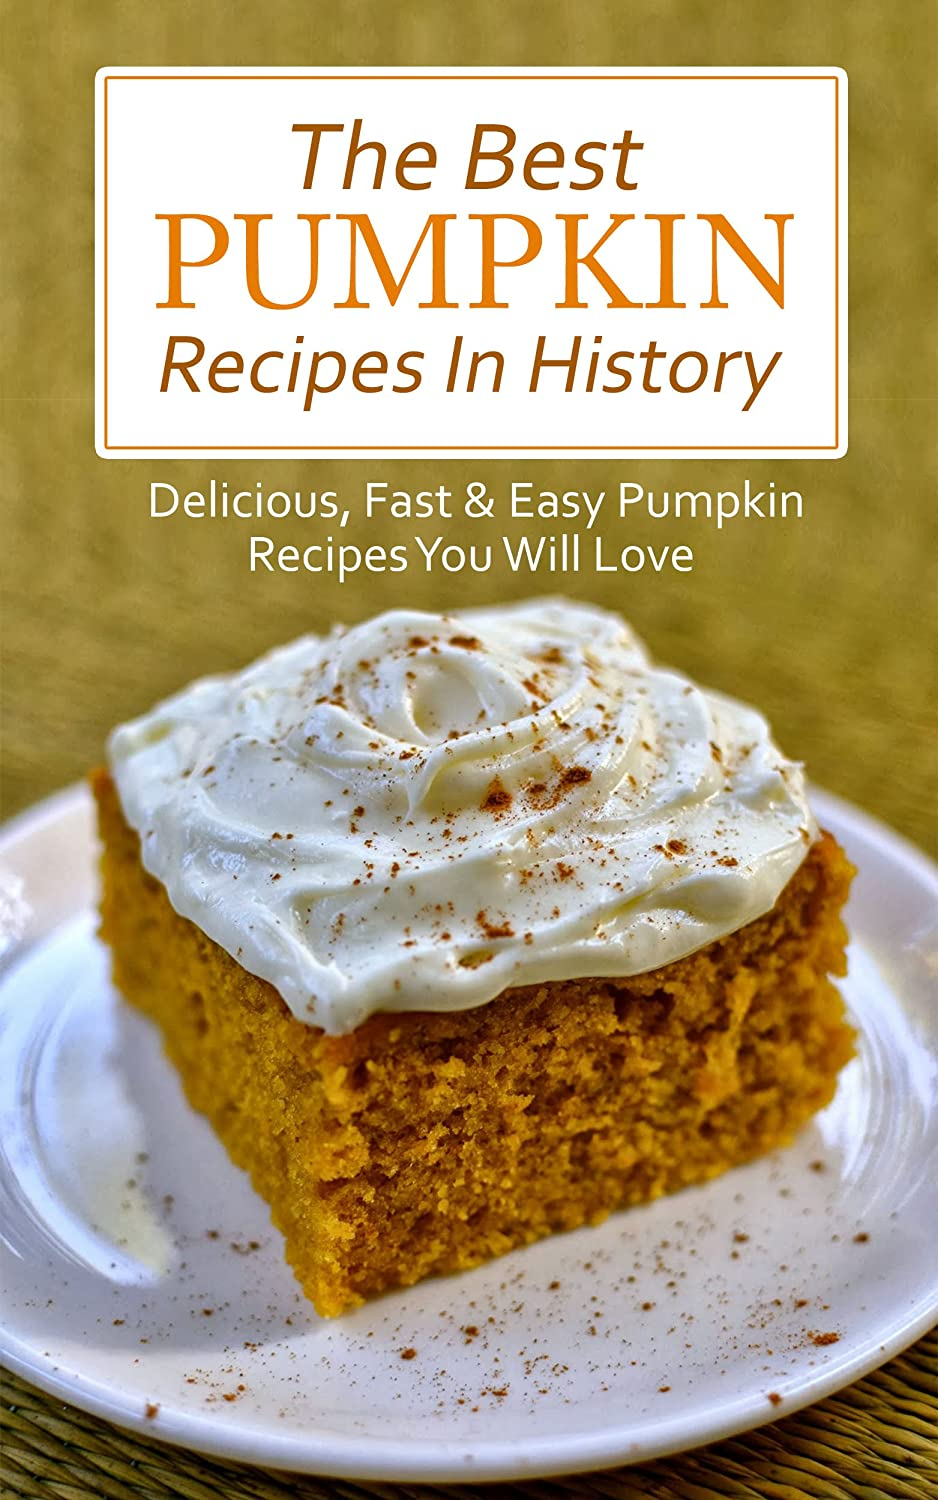 http://www.amazon.com/The-Best-Pumpkin-Recipes-History-ebook/dp/B00OO5IGC6/ref=as_sl_pc_ss_til?tag=lettfromahome-20&linkCode=w01&linkId=XDB4OGVJOPTEQNOI&creativeASIN=B00OO5IGC6